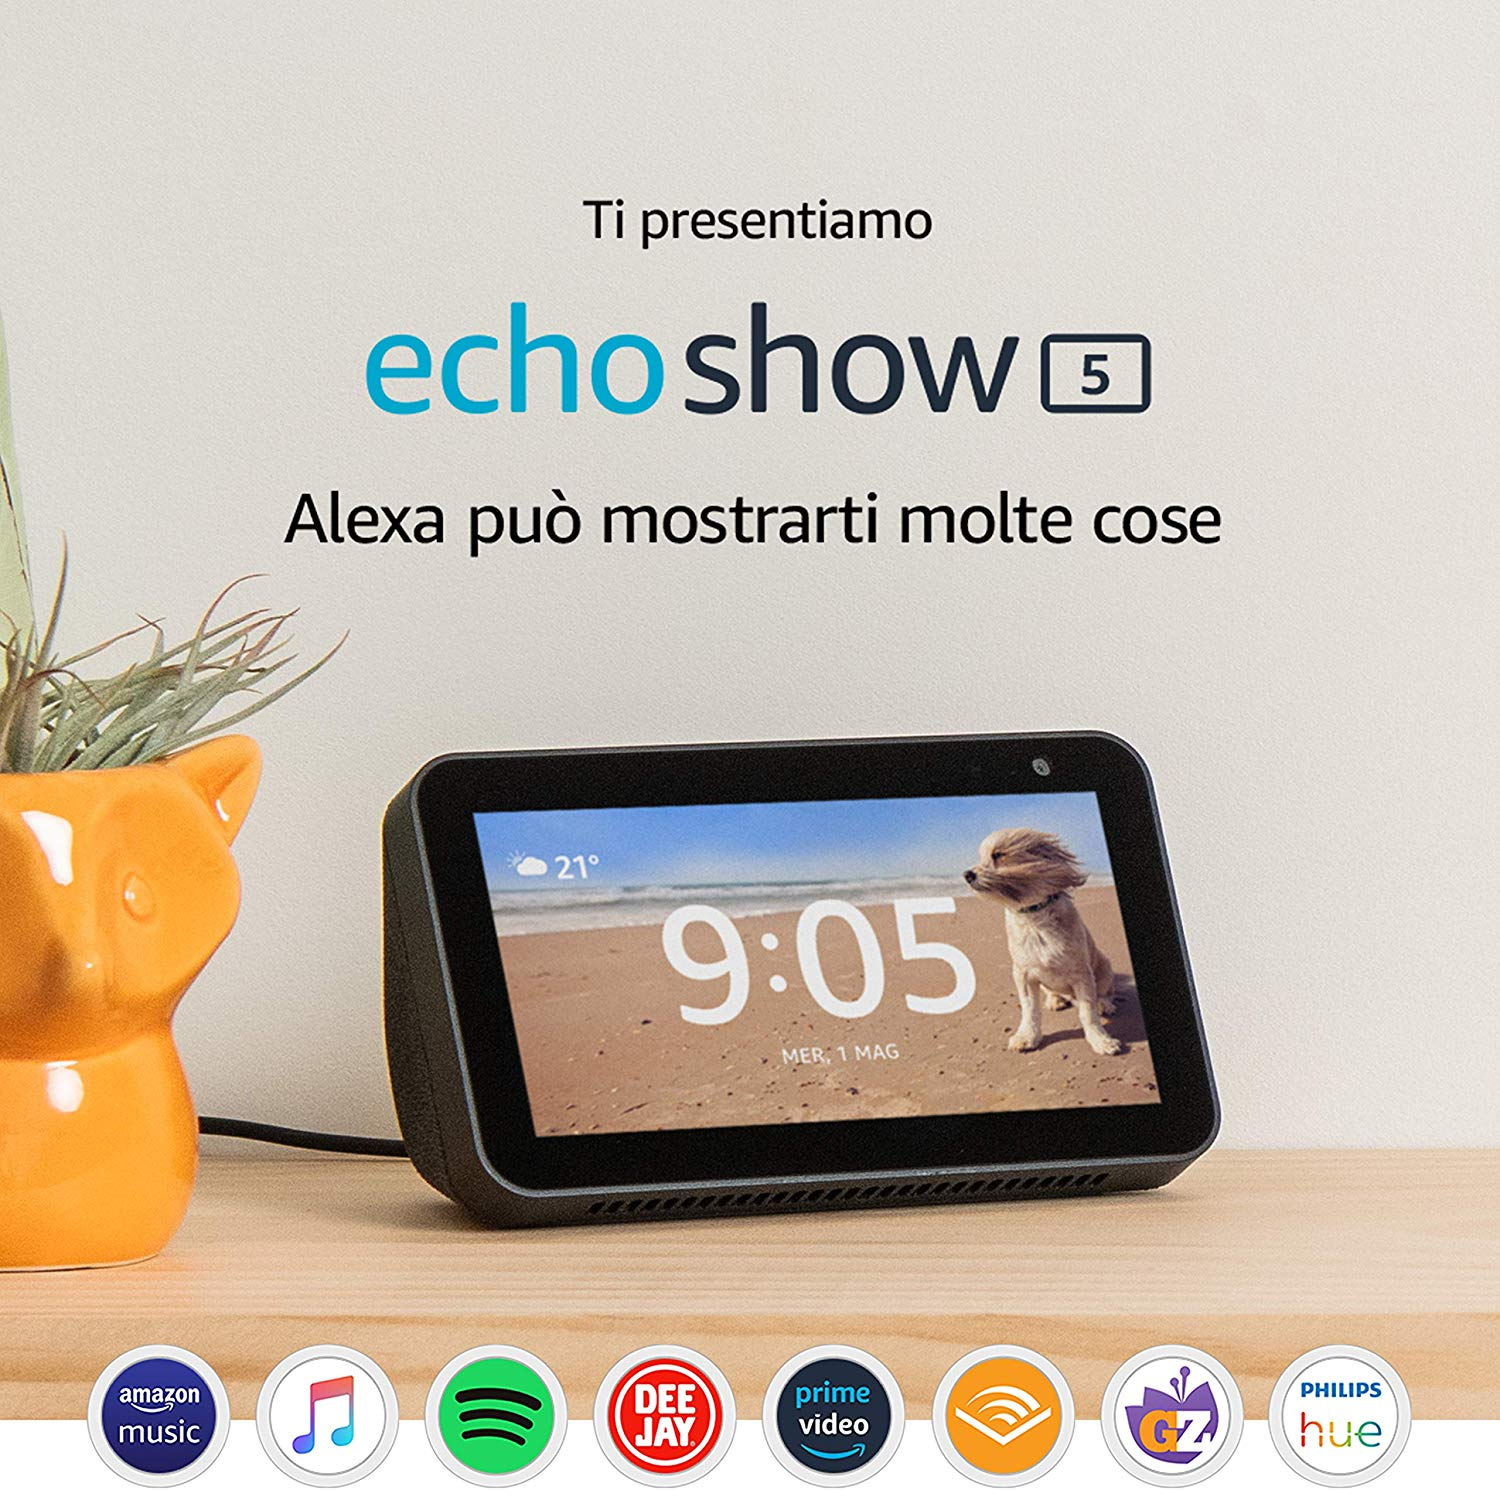 Ti presentiamo Echo Show 5 - Schermo compatto e intelligente con Alexa, Nero: Amazon.it